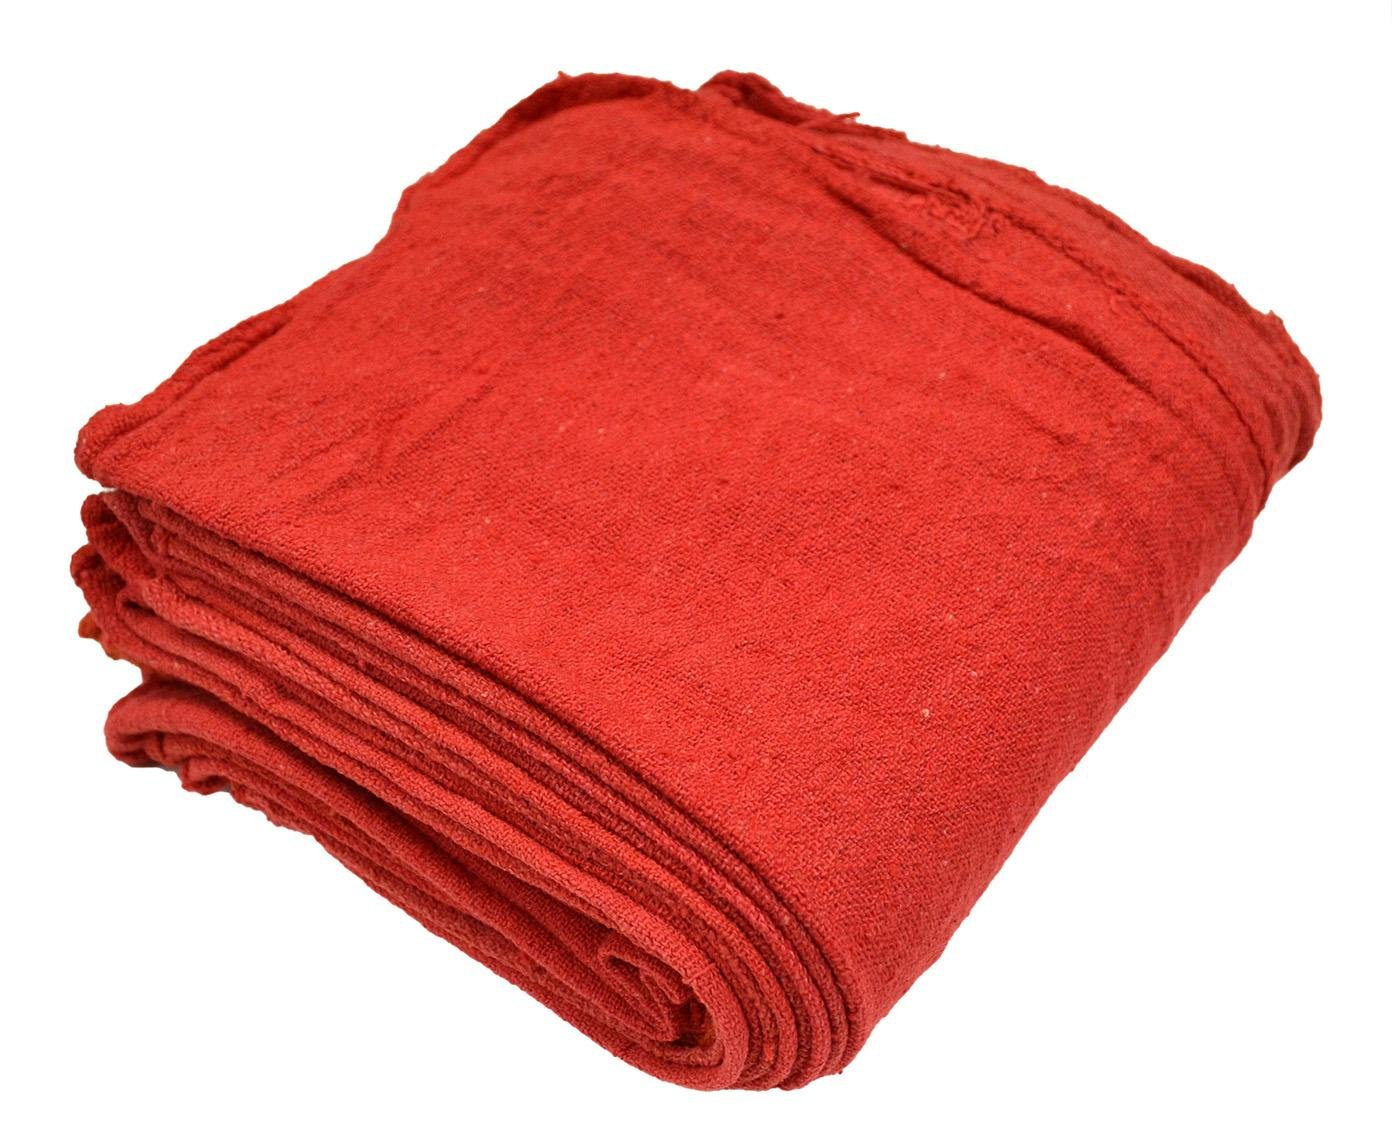 Pro-Clean Basics A21818 Reusable Shop Towels, Red, 12' x 14', Bale of 2,500 12 x 14 R&R Textile Mills